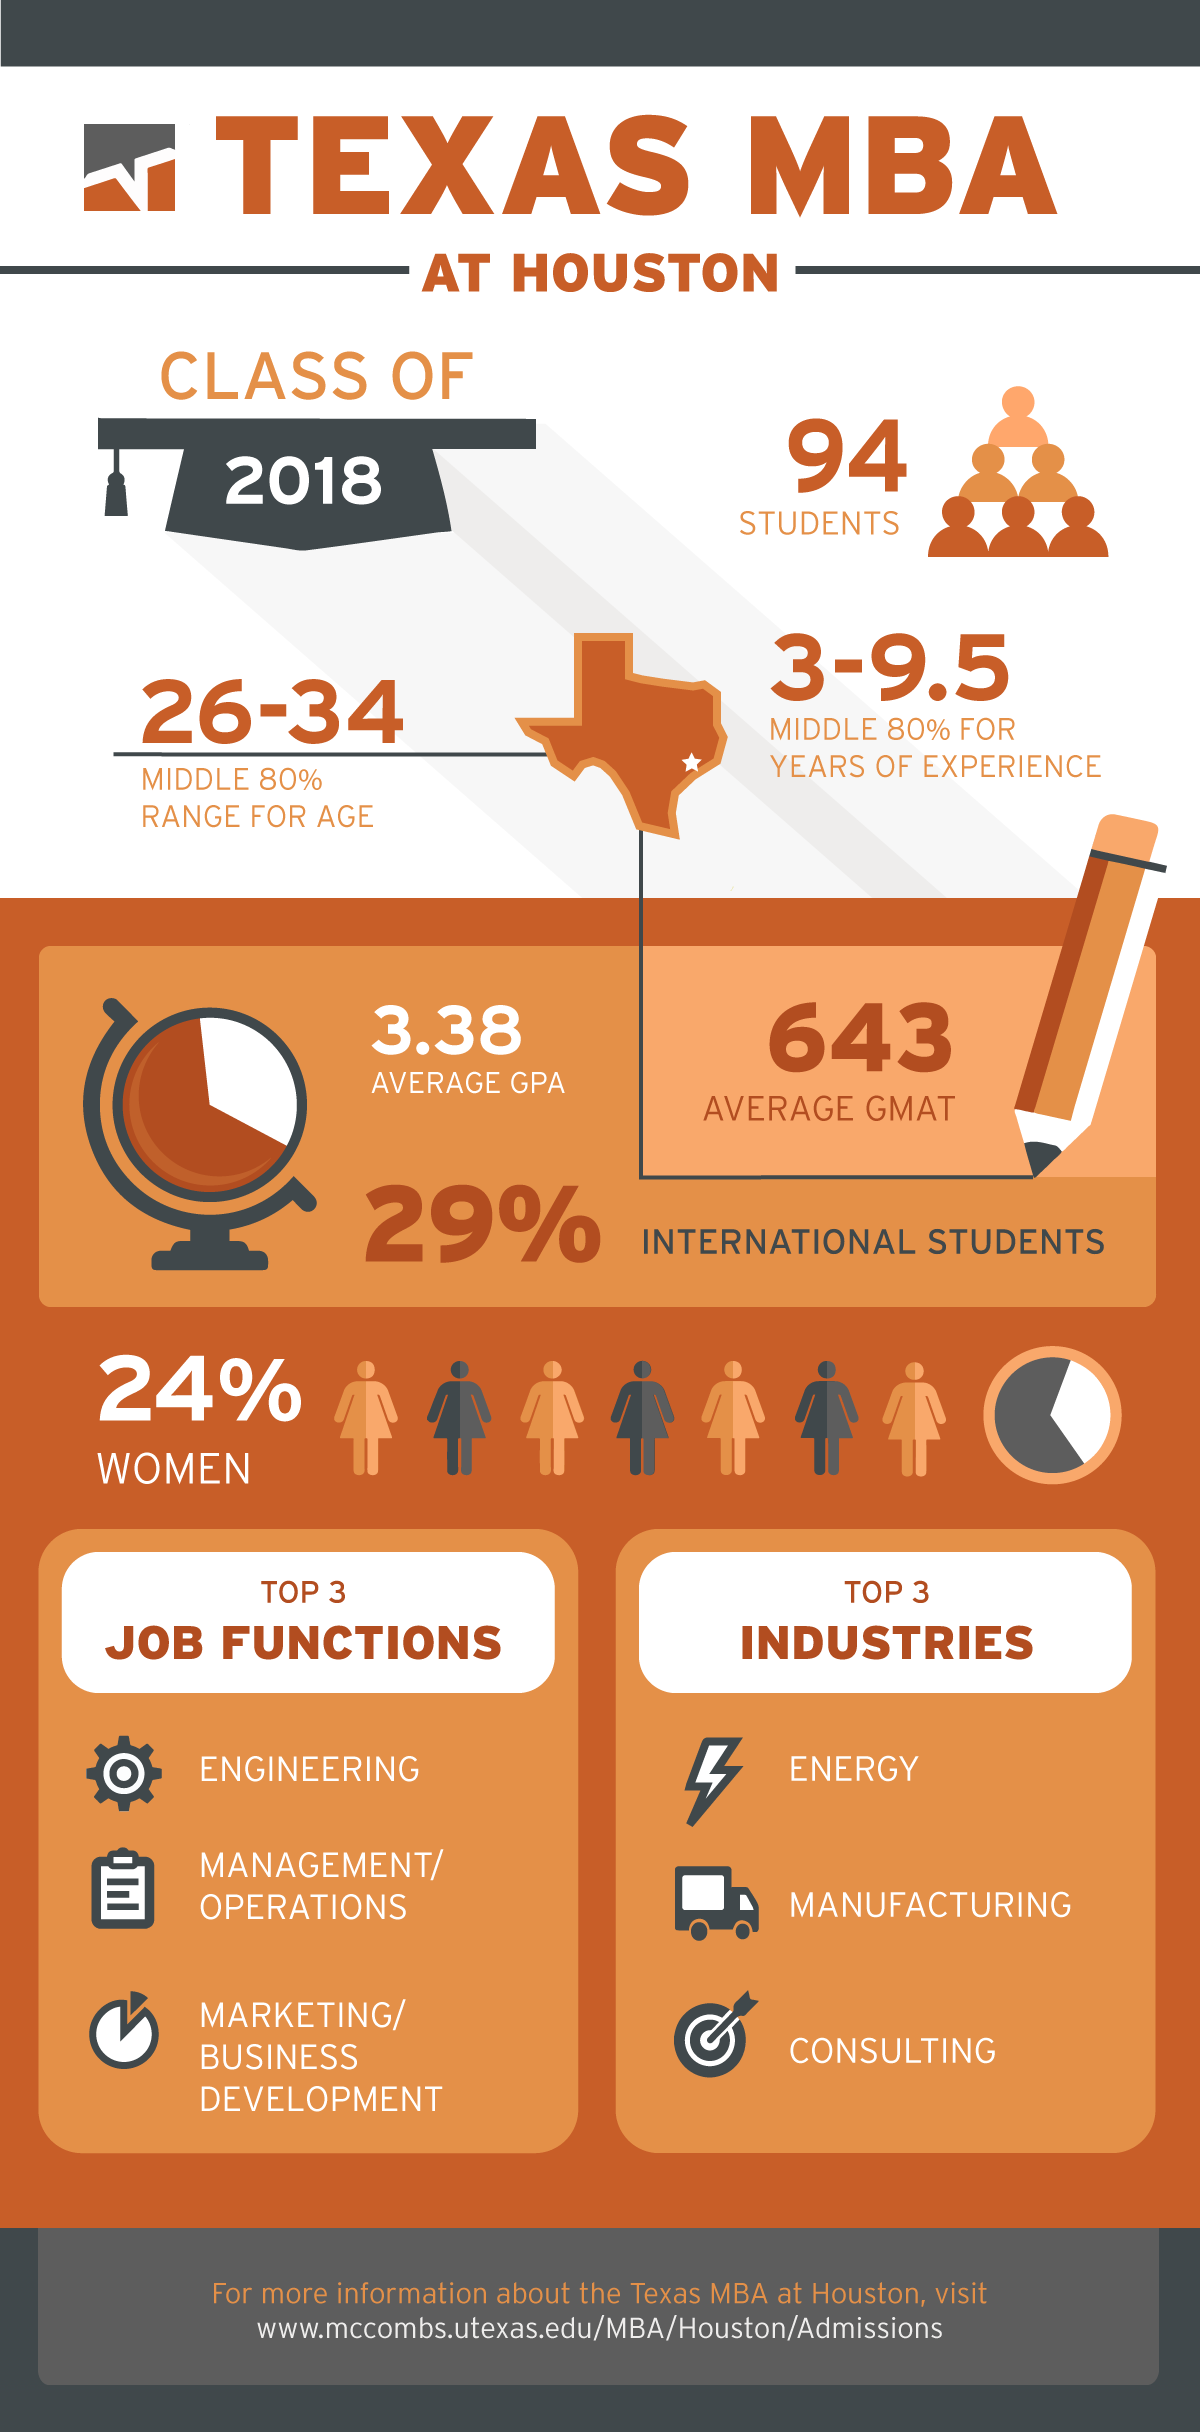 mba at houston class of 2018 mba Mba, Technology